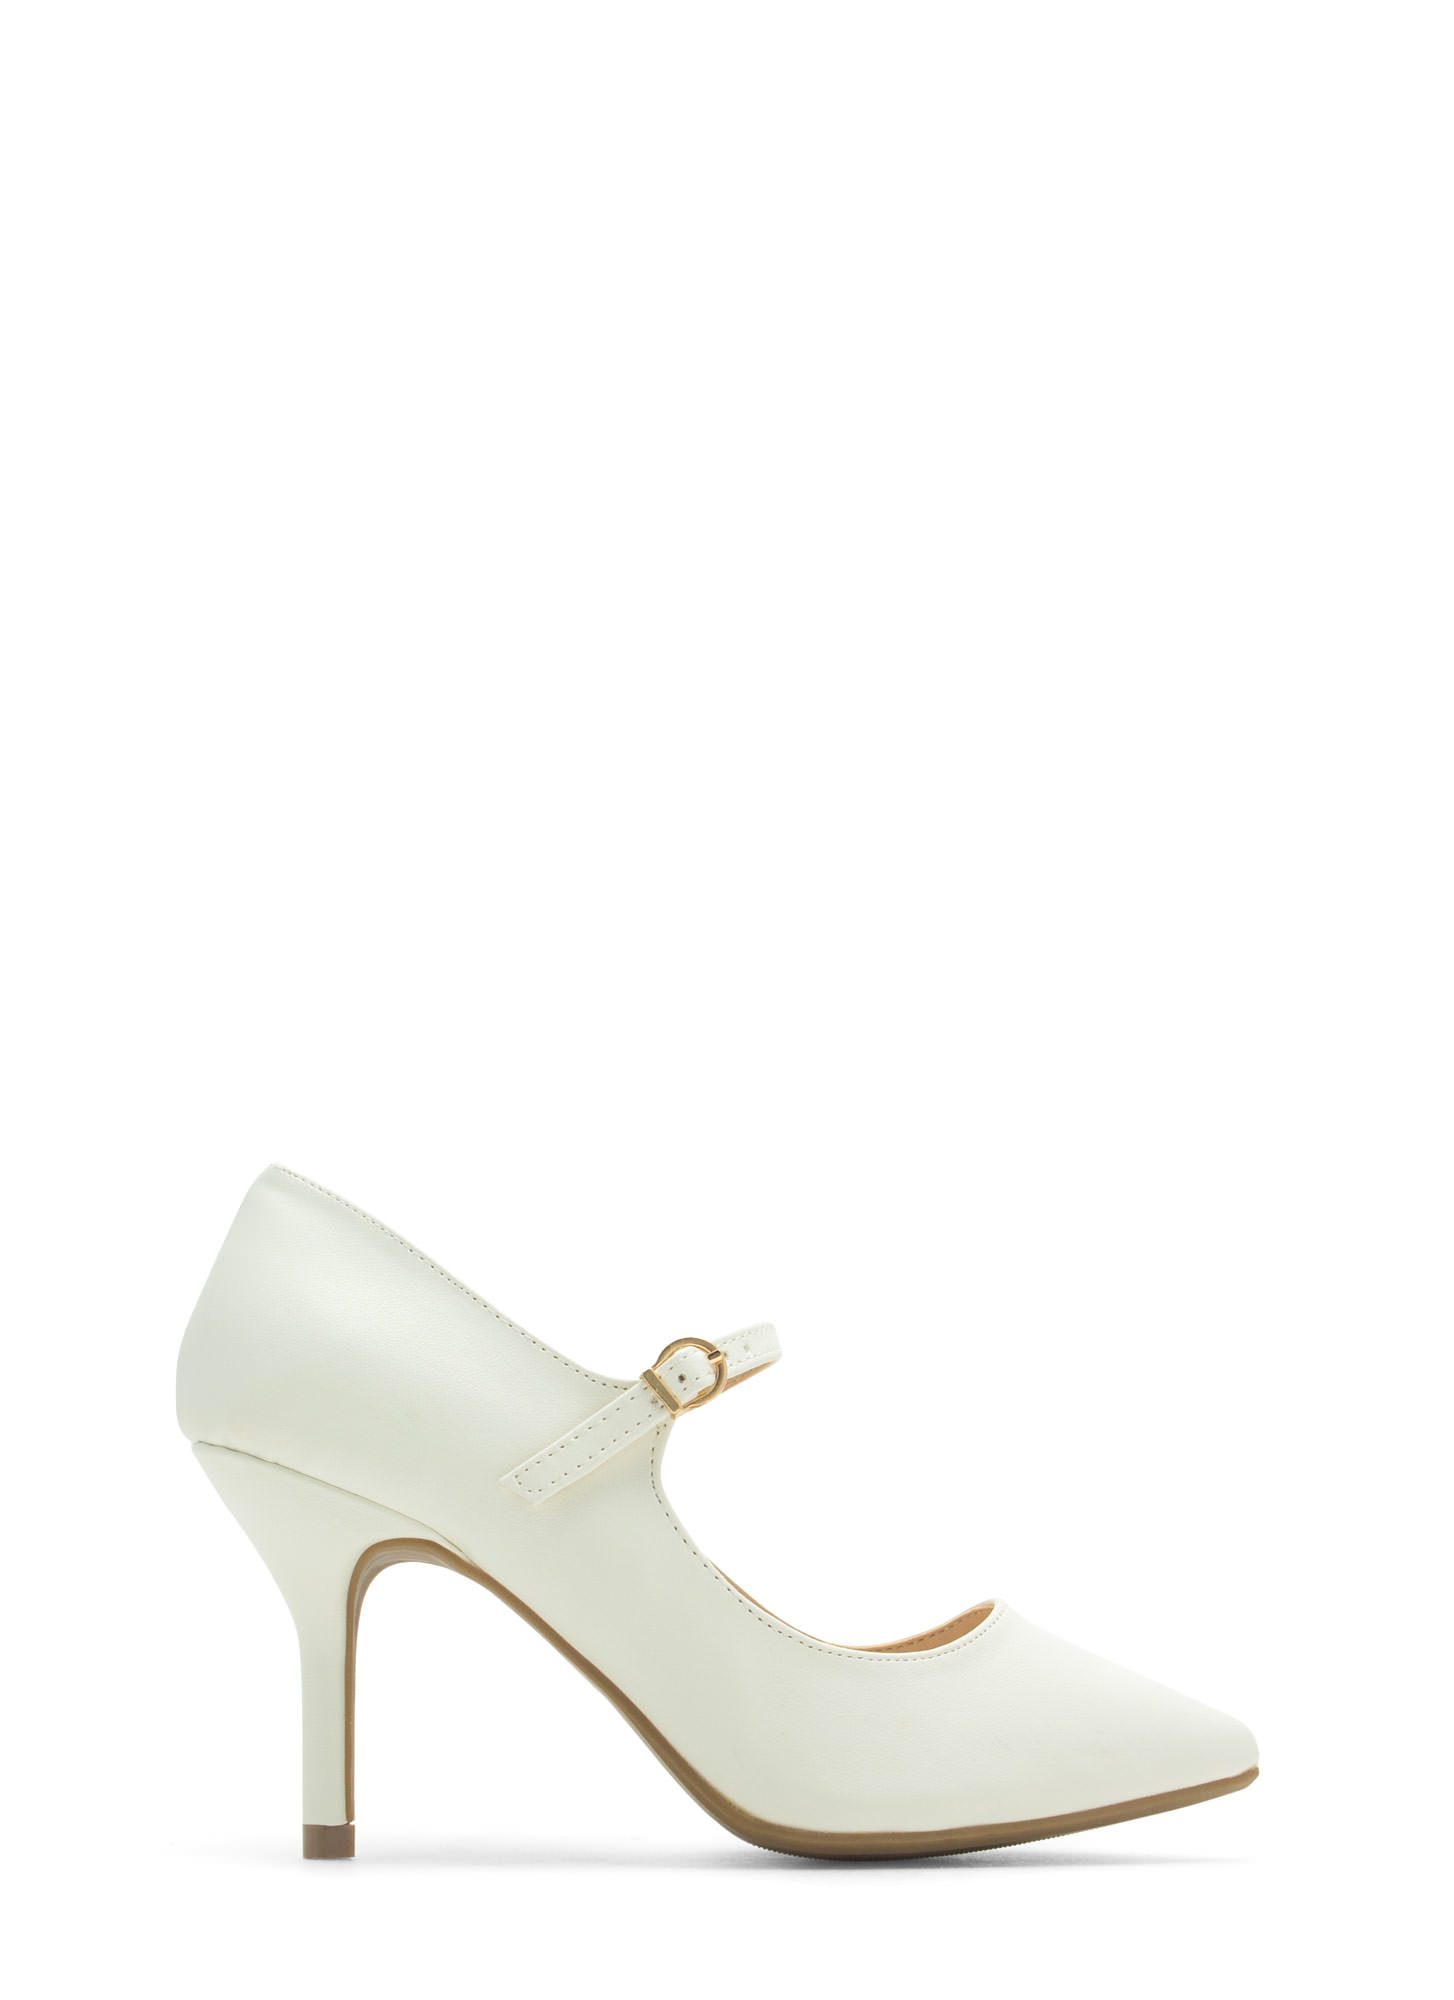 Made 4 Strutting Mary Jane Heels WHITE